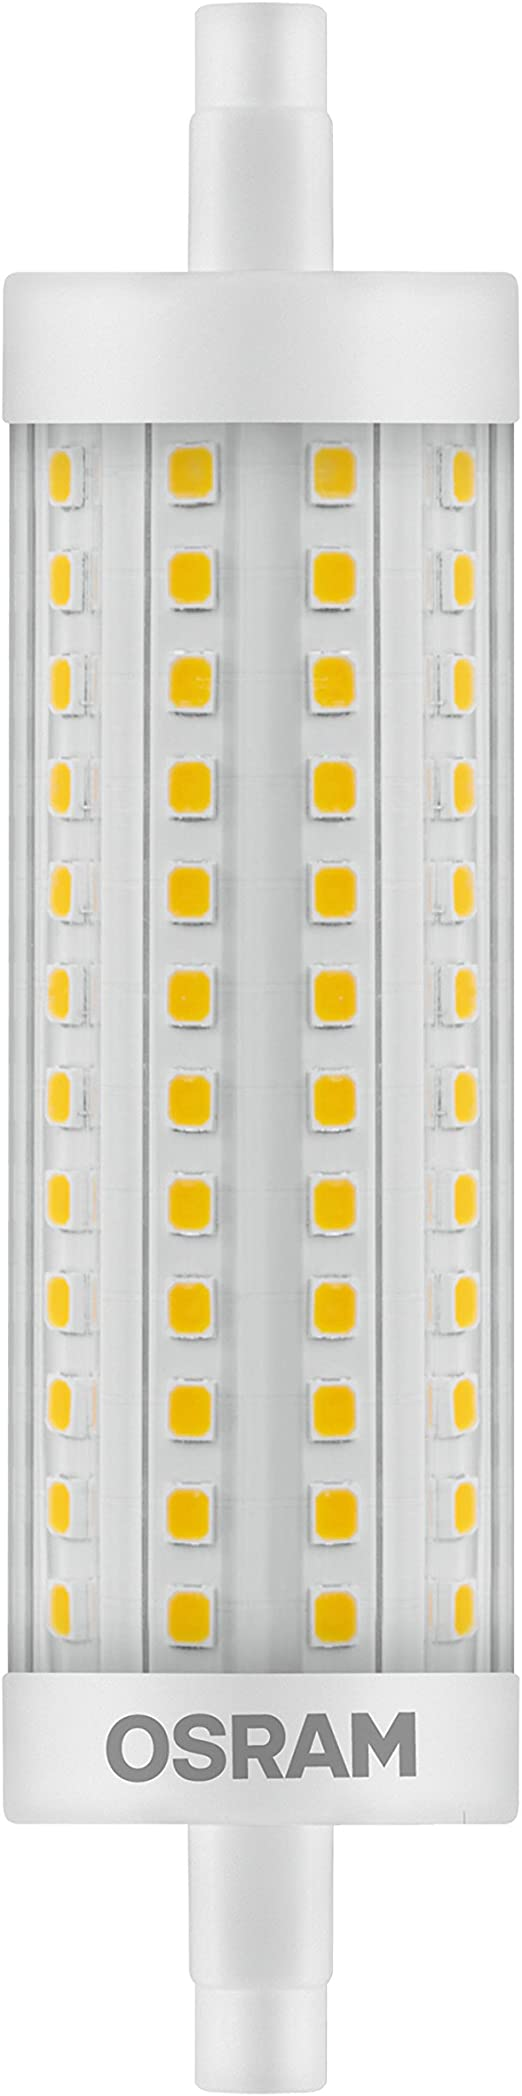 Osram Led Star Special Line Led Beam Angle With R7s Base Not Dimmable Replacement For 100 Watt 118 Mm Lenght Clear Warm White 2700 Kelvin 9 Pack Amazon Co Uk Lighting